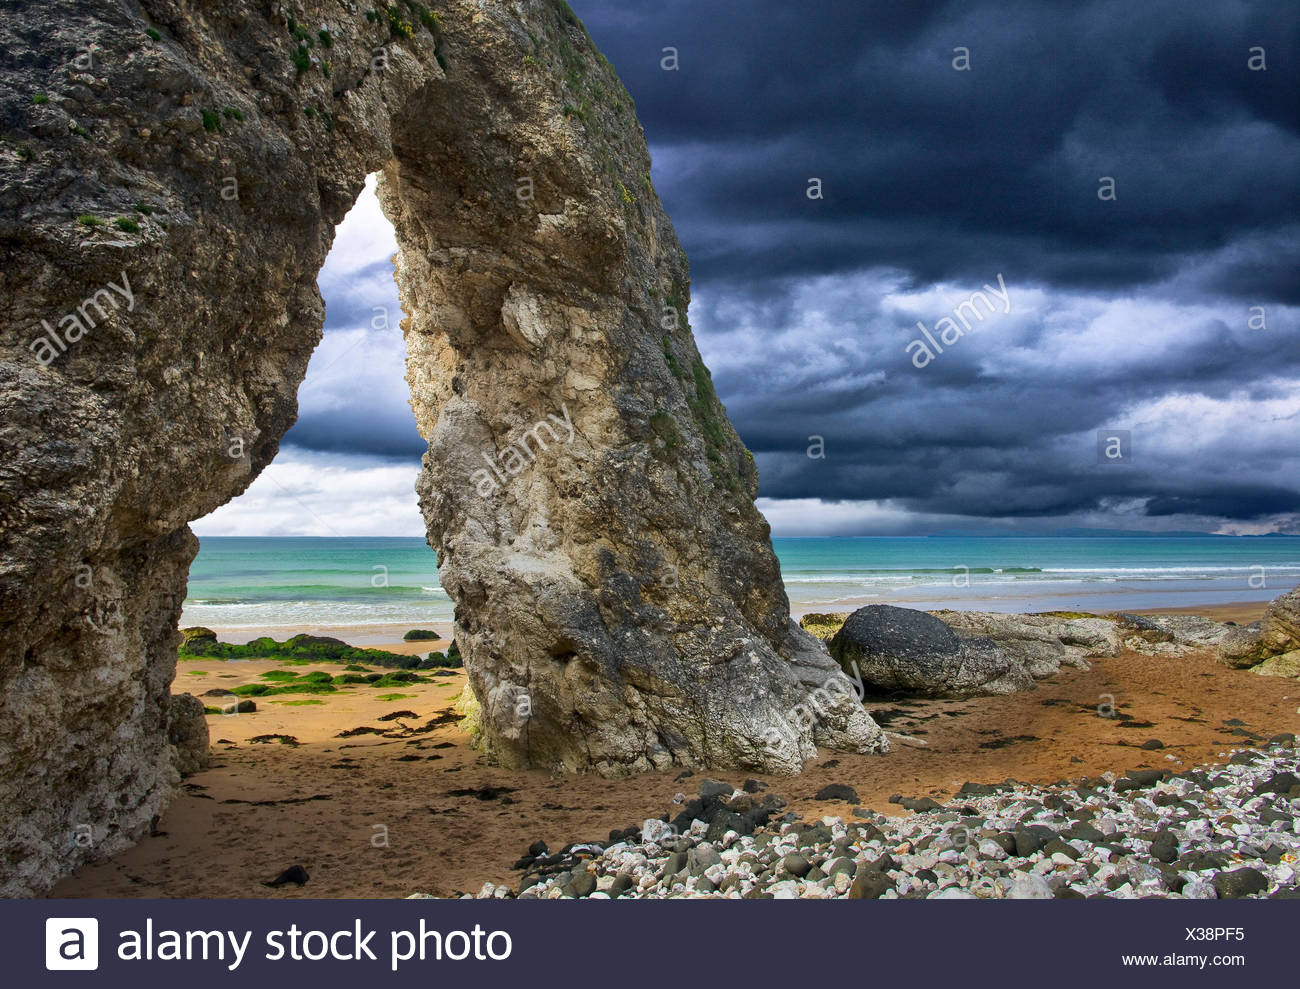 Northern Ireland, Antrim, Bushmills, rock gate on the Causeway Coast, front carrying rain over the sea - Stock Image